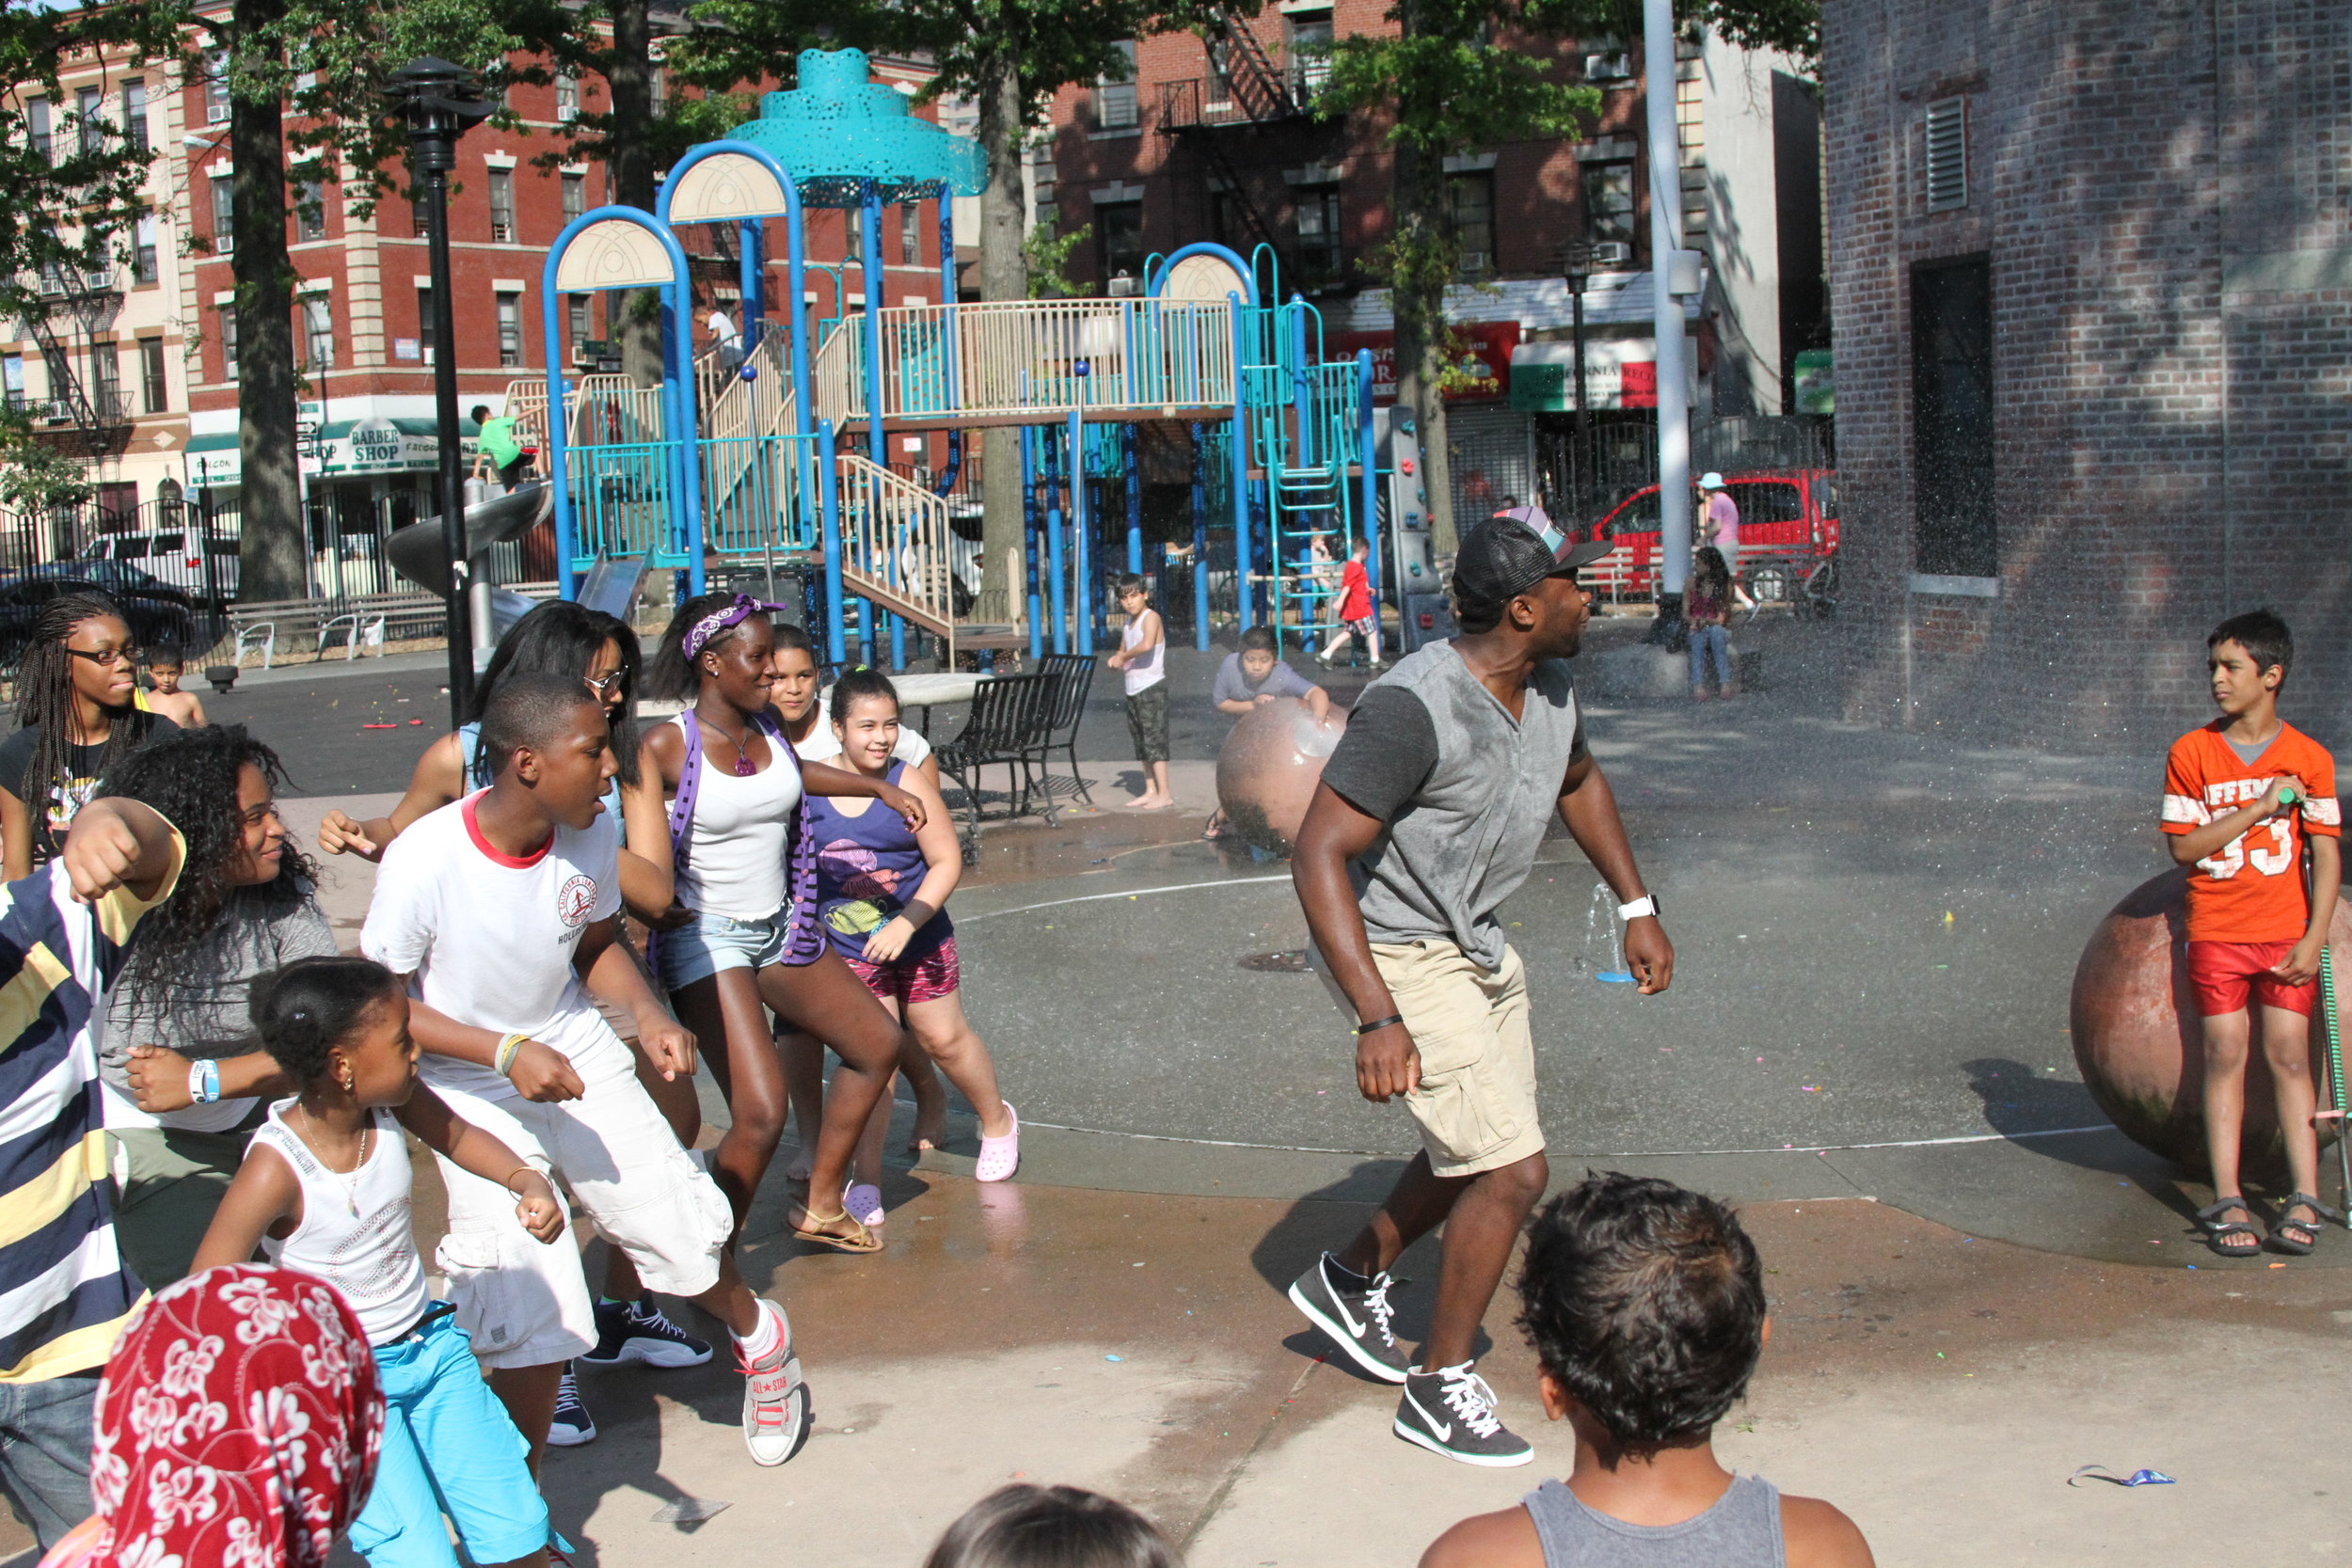 Deo teaching dance to some students in a park in Jamaica Queens, NYC.